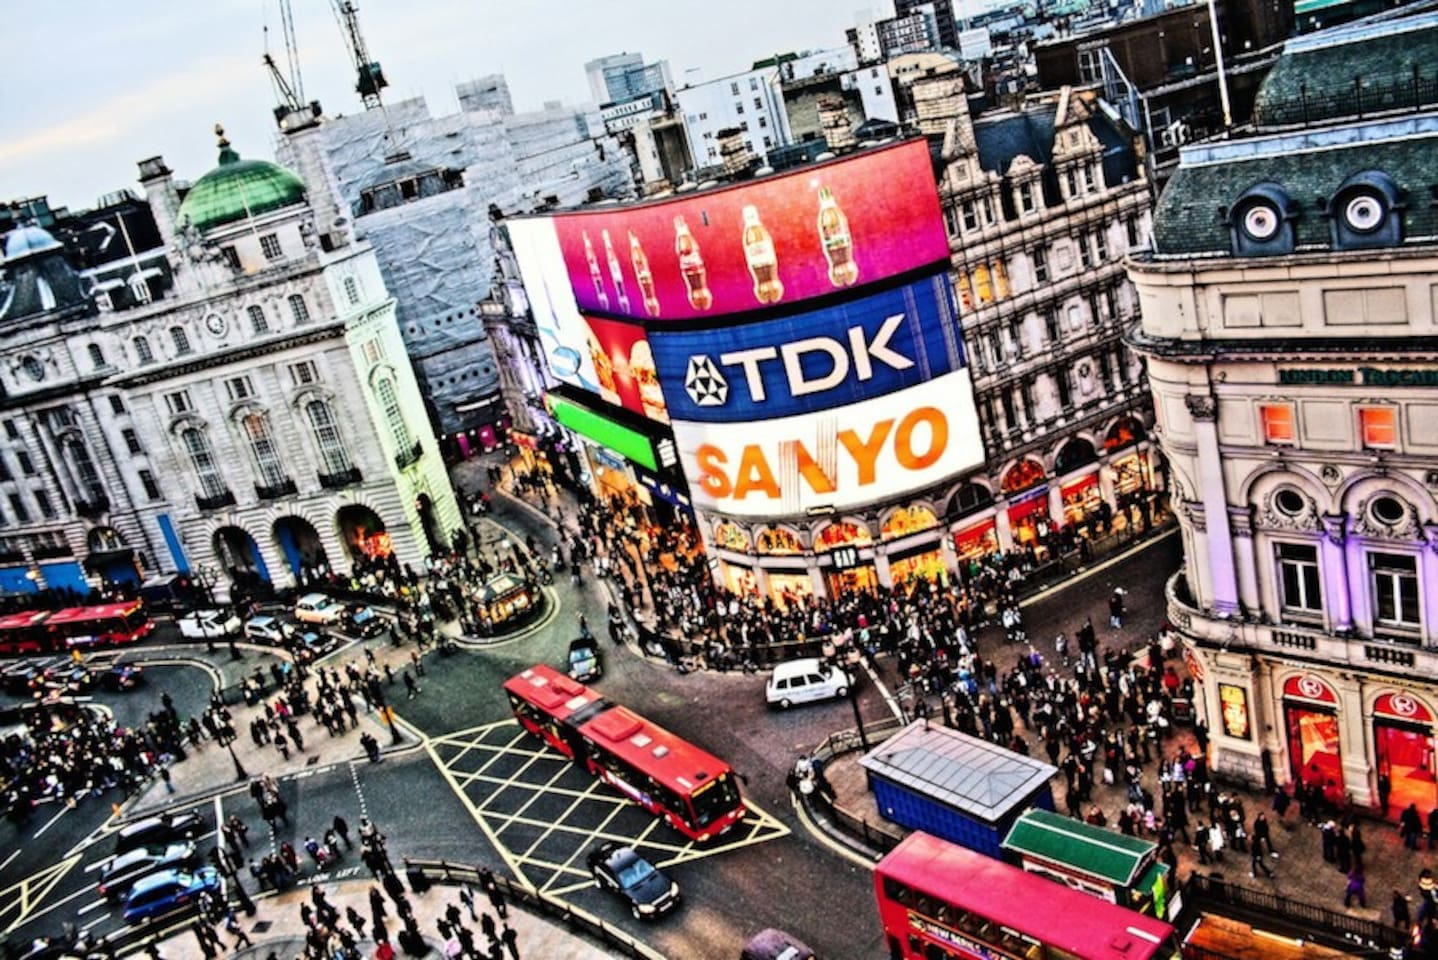 Piccadilly Circus is 25 minutes away from the house.